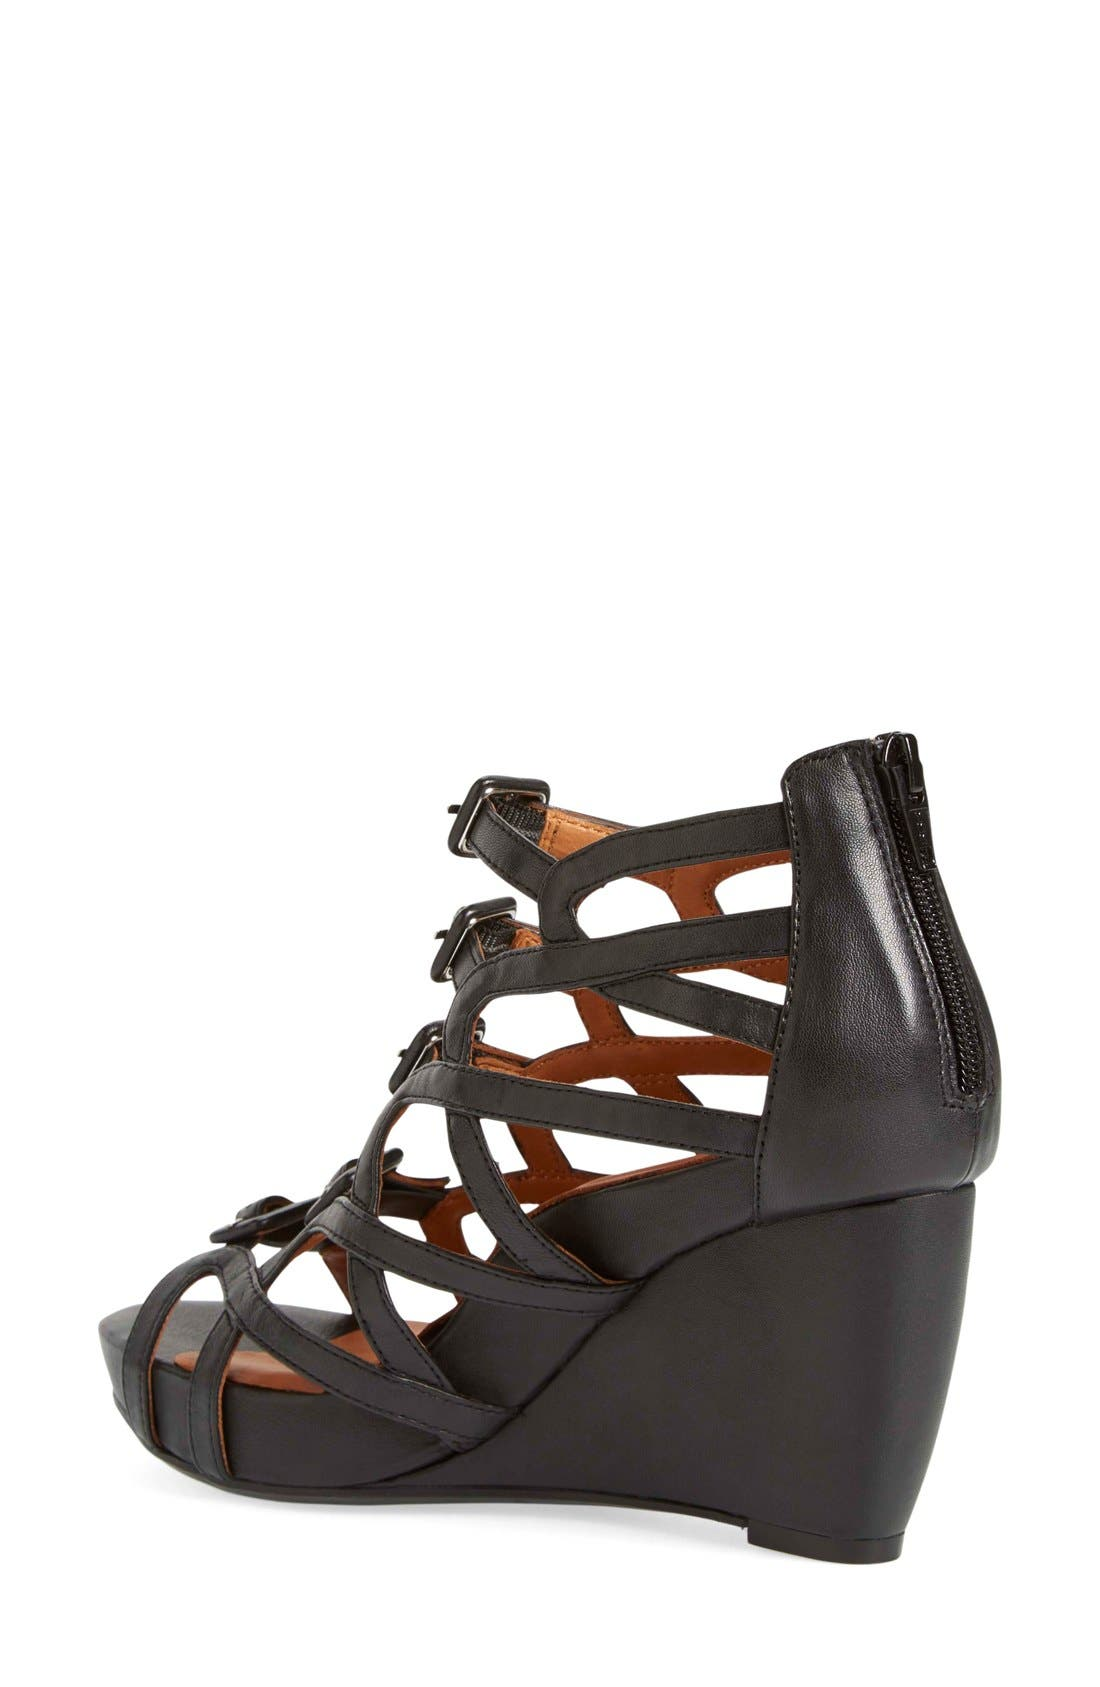 Ivanna' Gladiator Wedge Sandal,                             Alternate thumbnail 8, color,